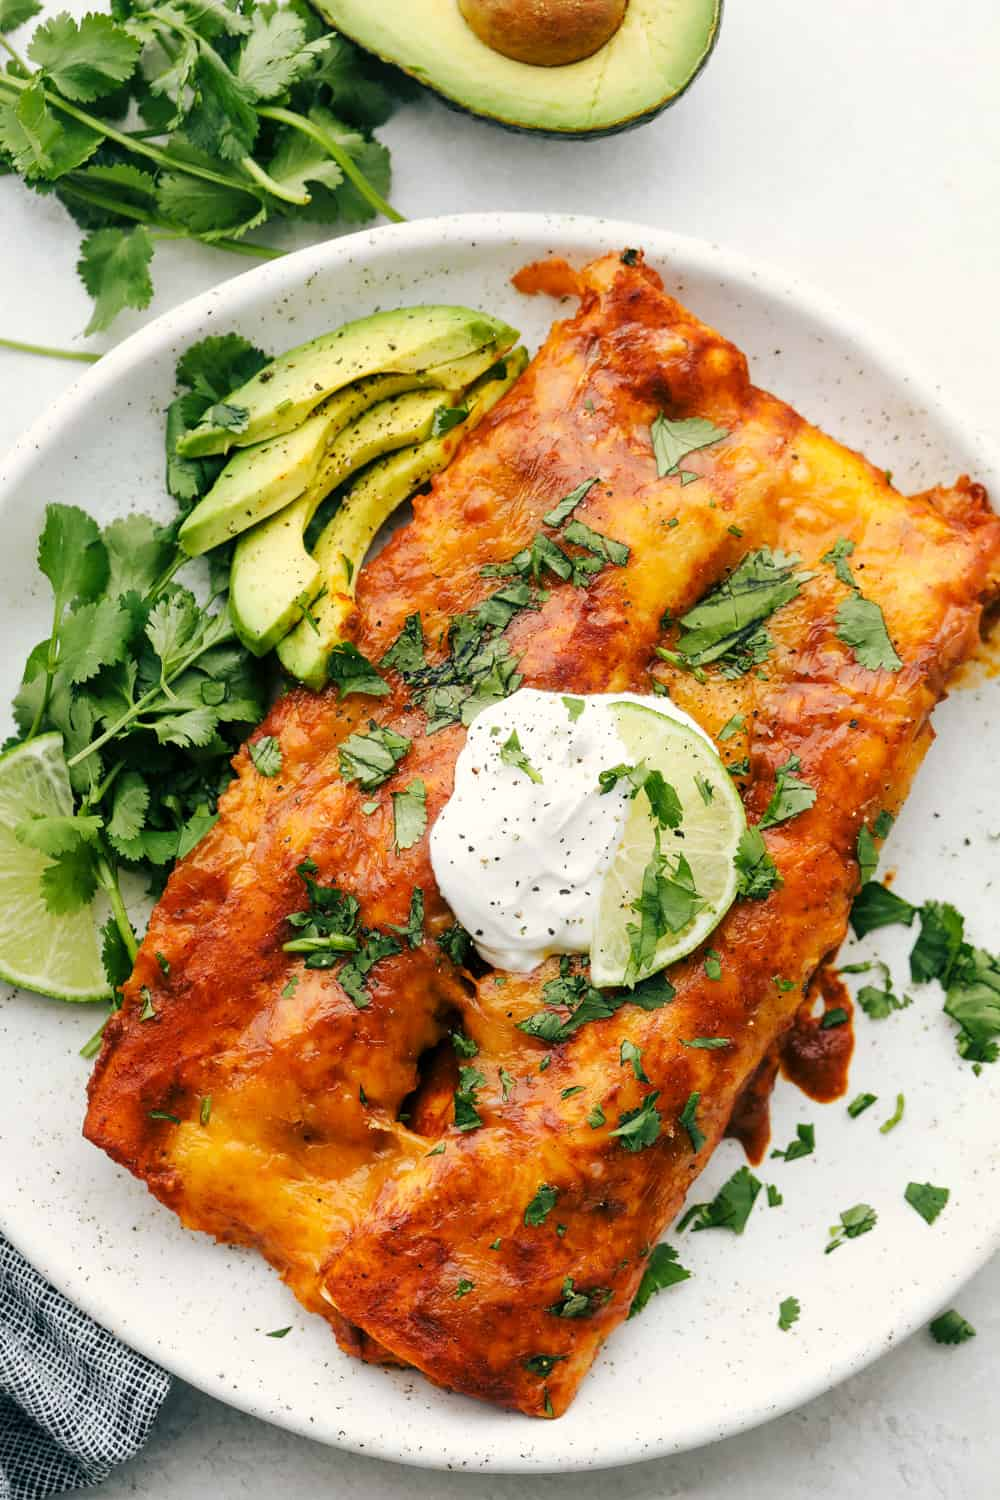 Enchiladas on a plate with sour cream and sliced avocados.